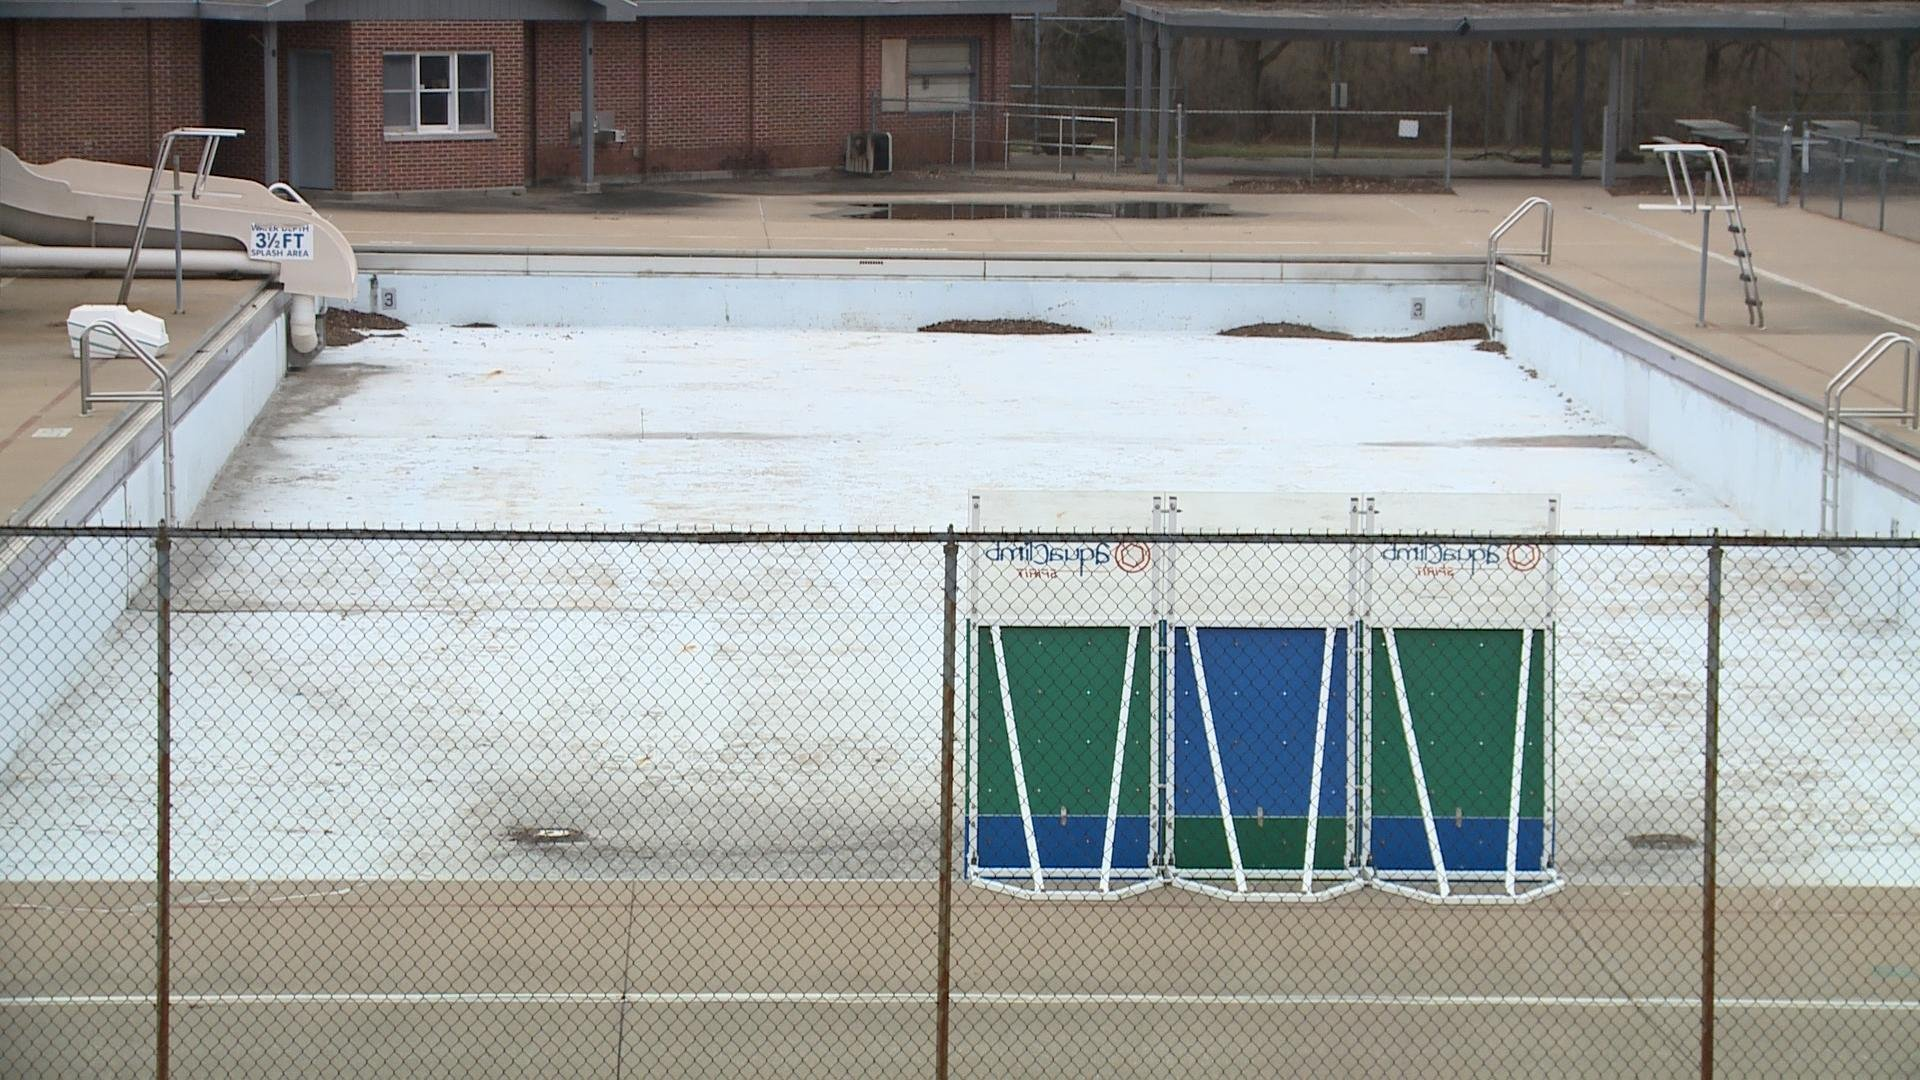 Public Asked For Ideas For Old Wavering Aquatic Center Rockford S News Leader